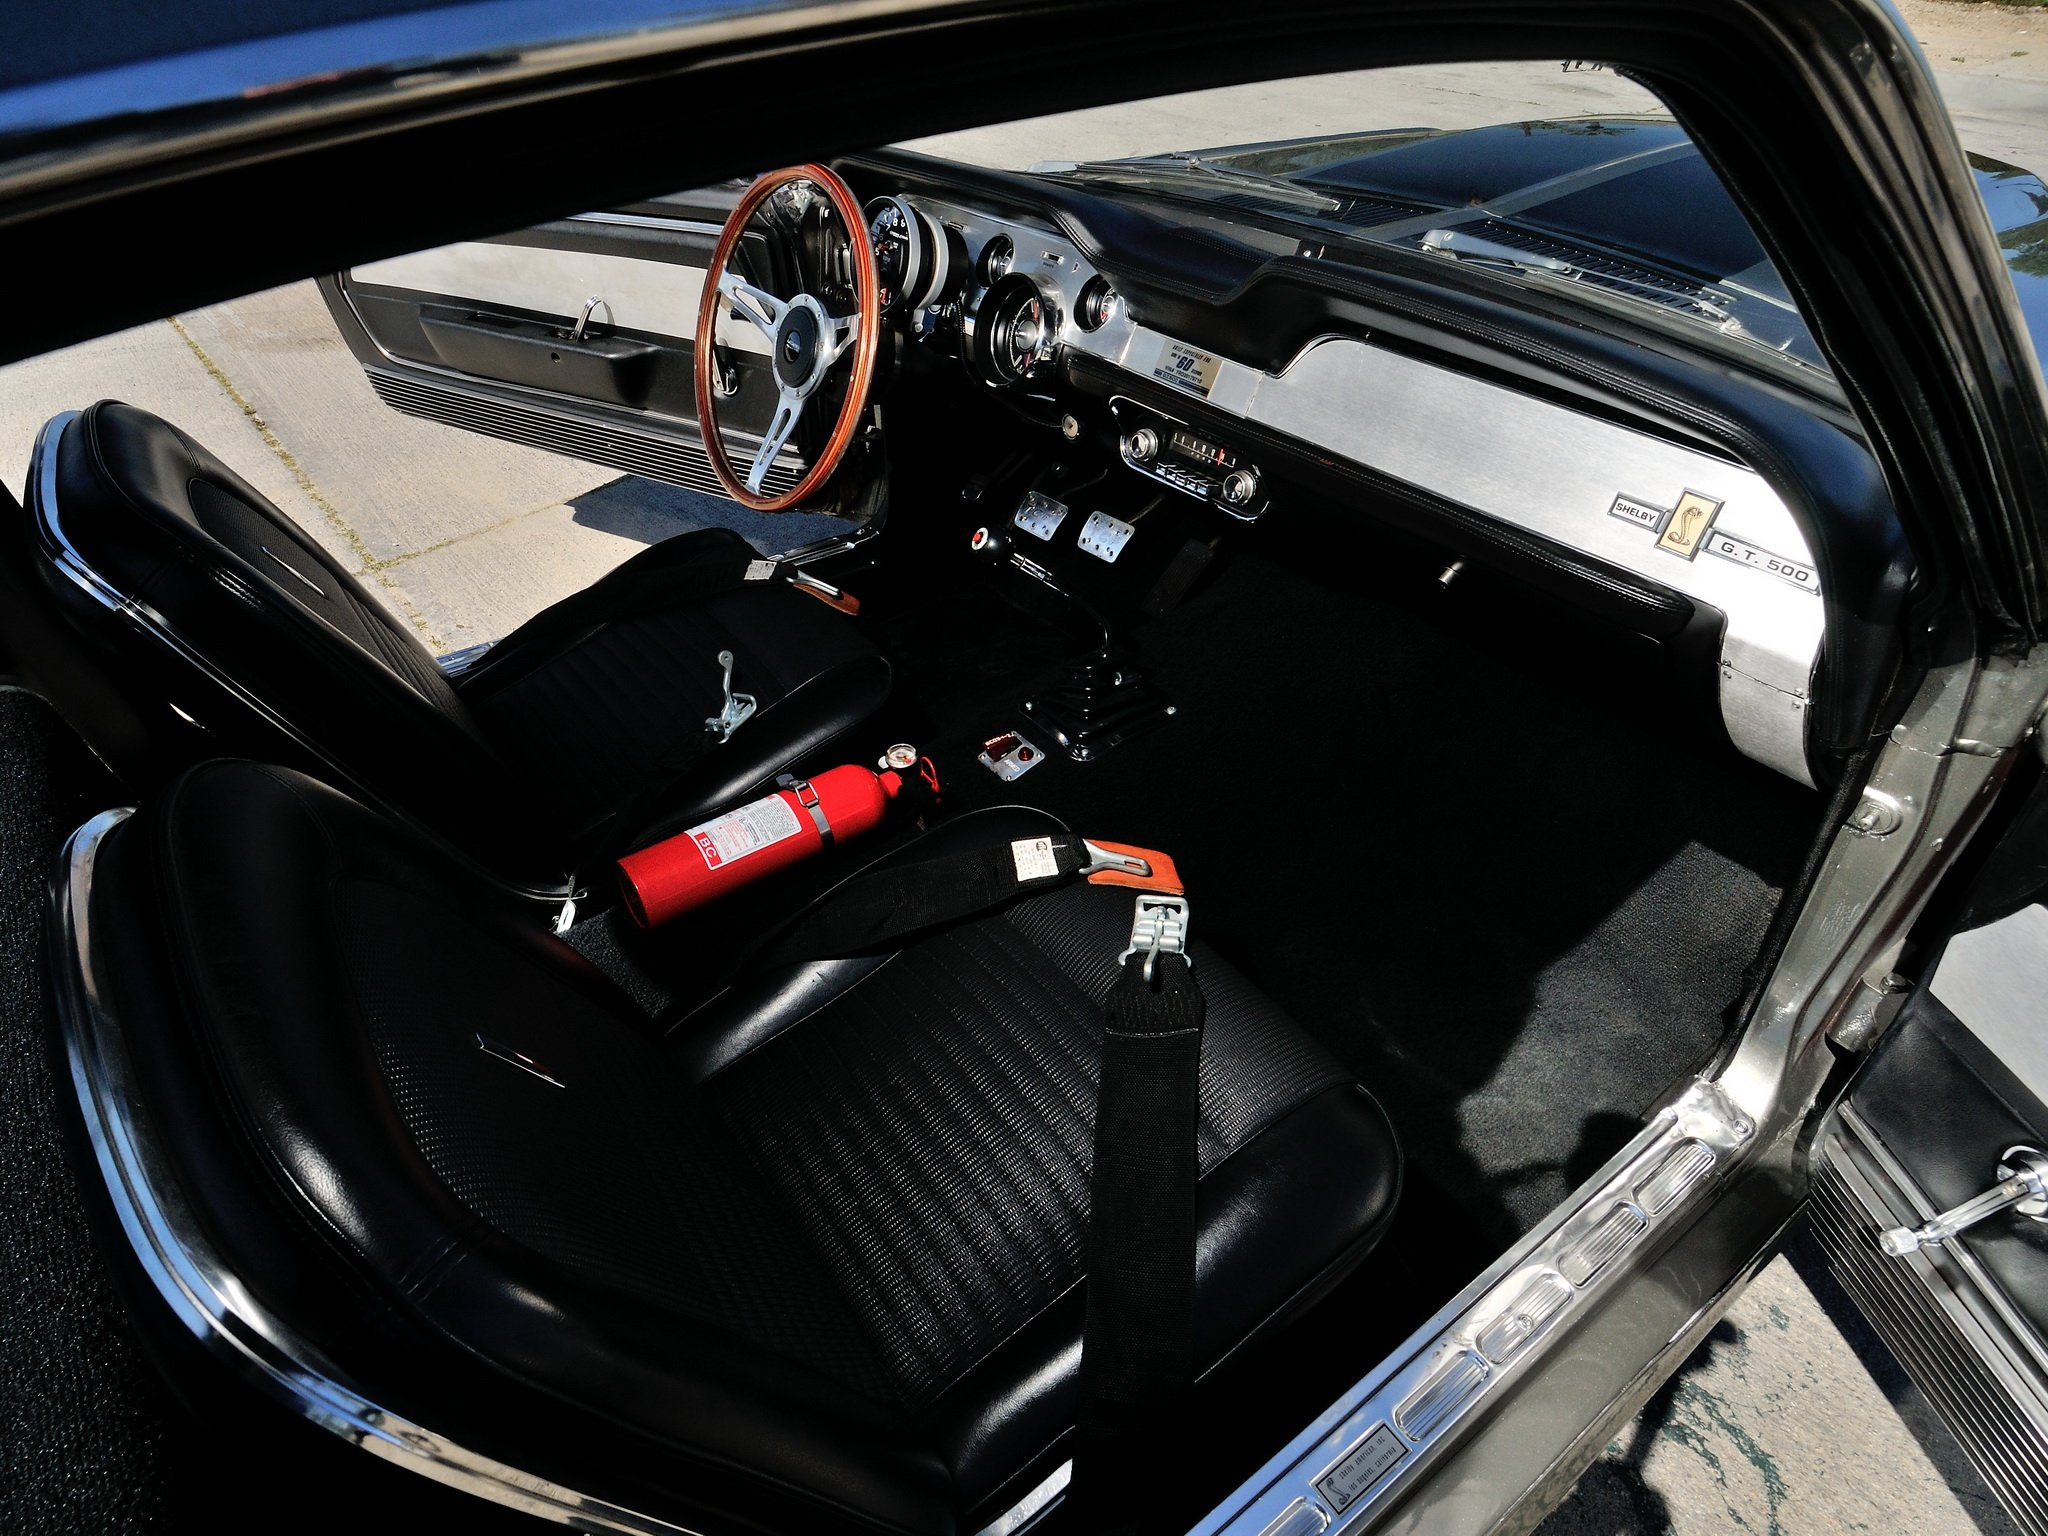 1967 ford mustang shelby cobra gt500 eleanor hot rod rods muscle classic interior f wallpaper